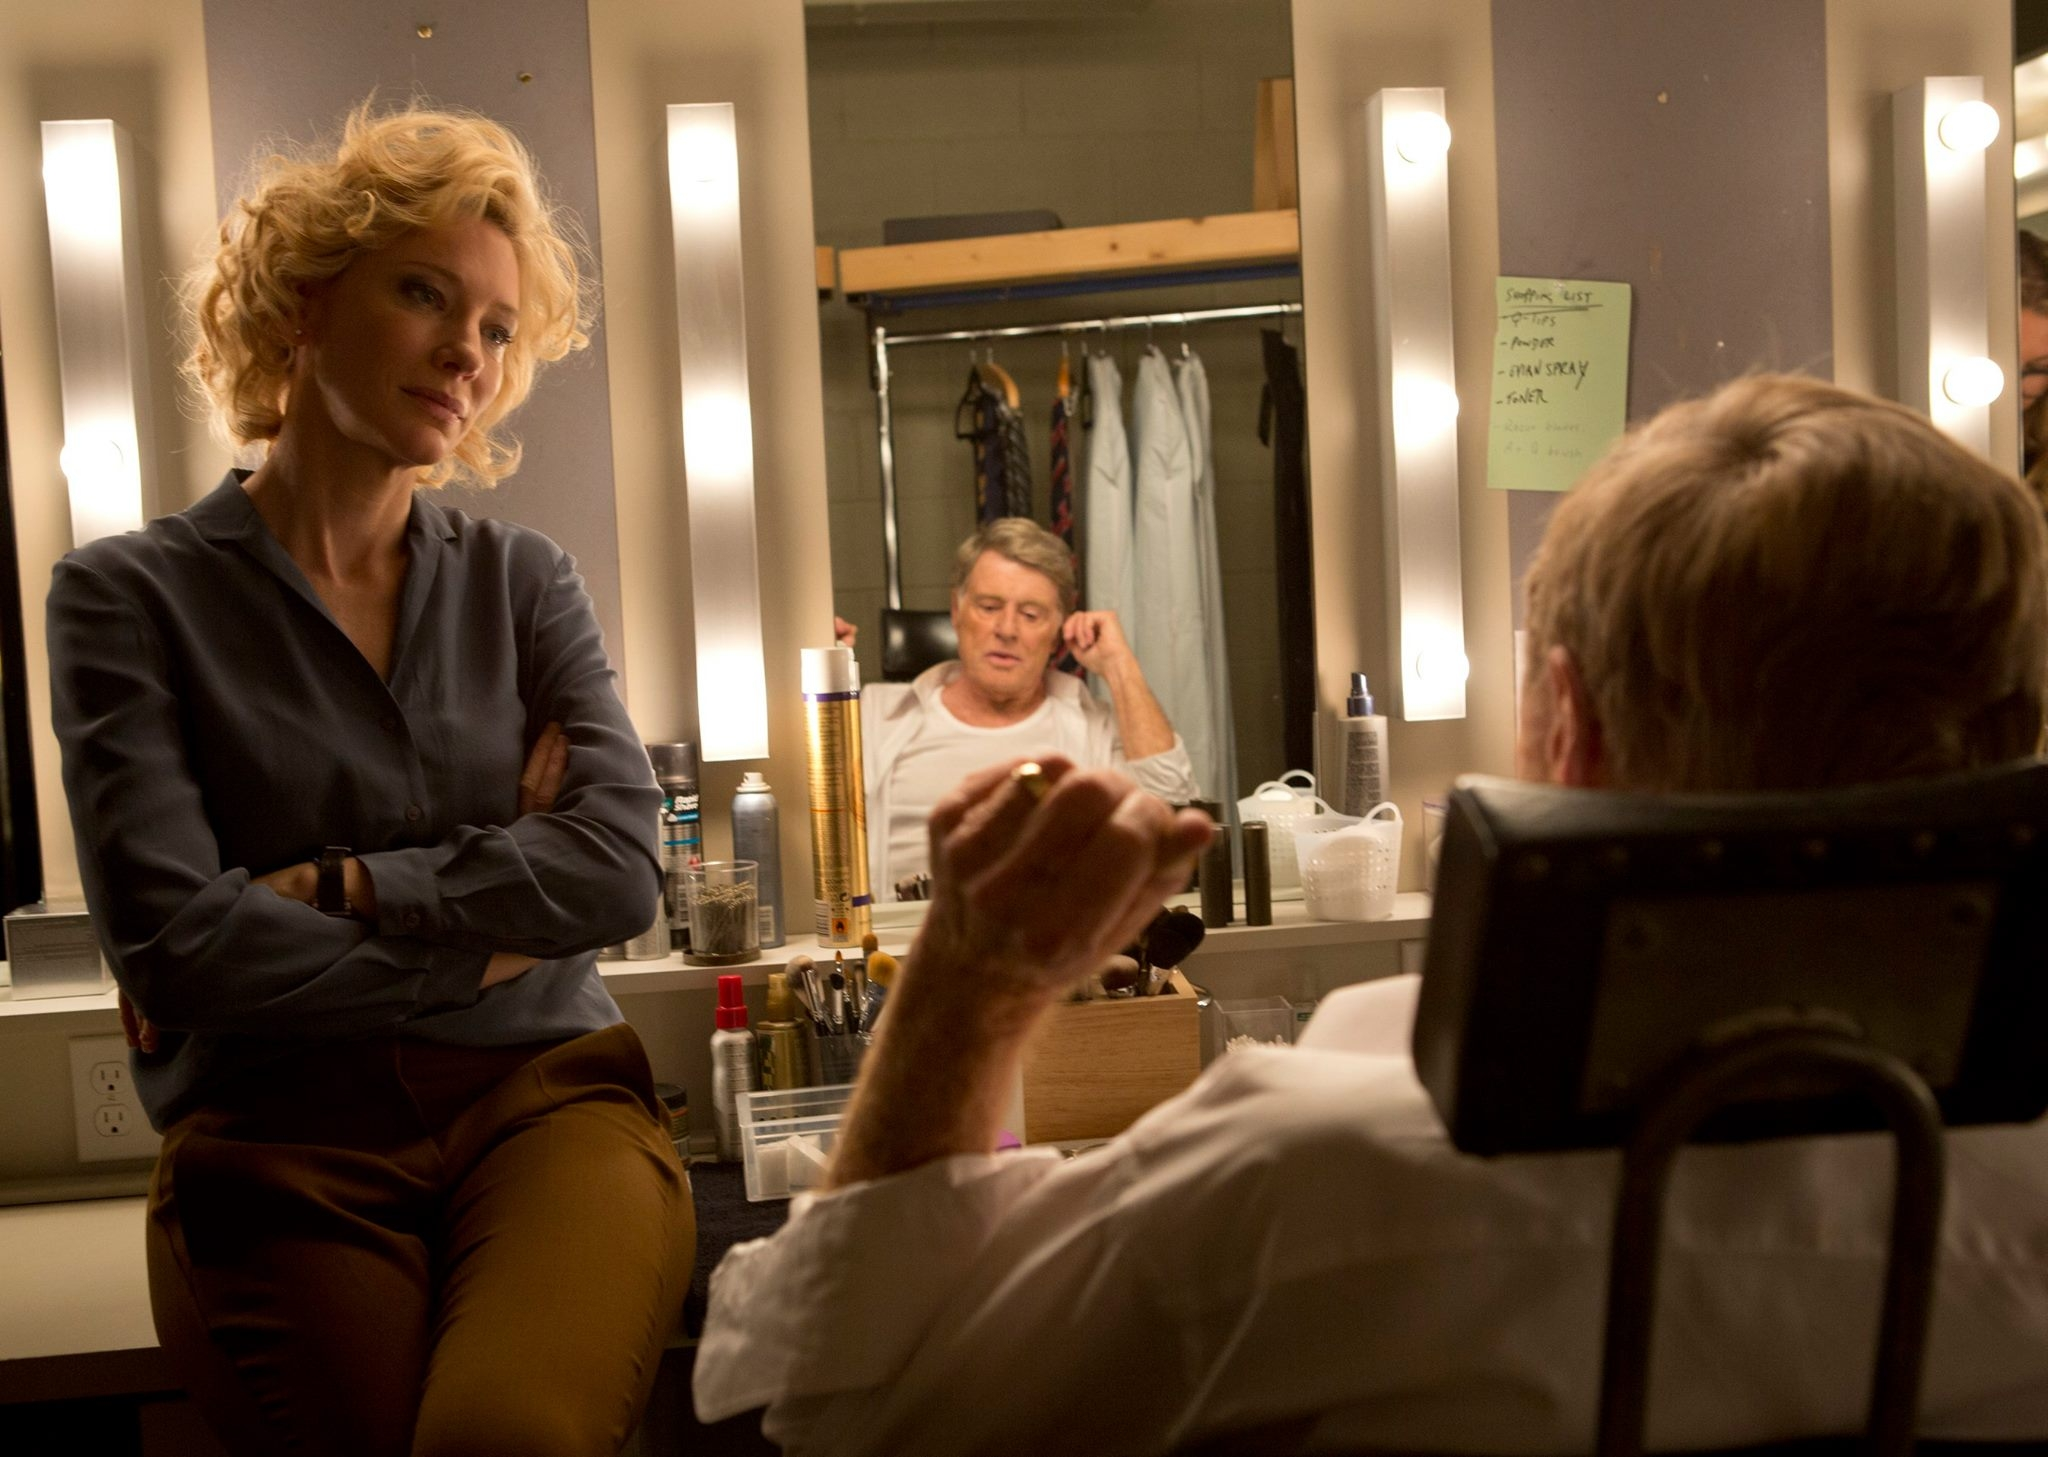 Redford, Blanchett tackle Dan Rather's fall from grace in 'Truth'